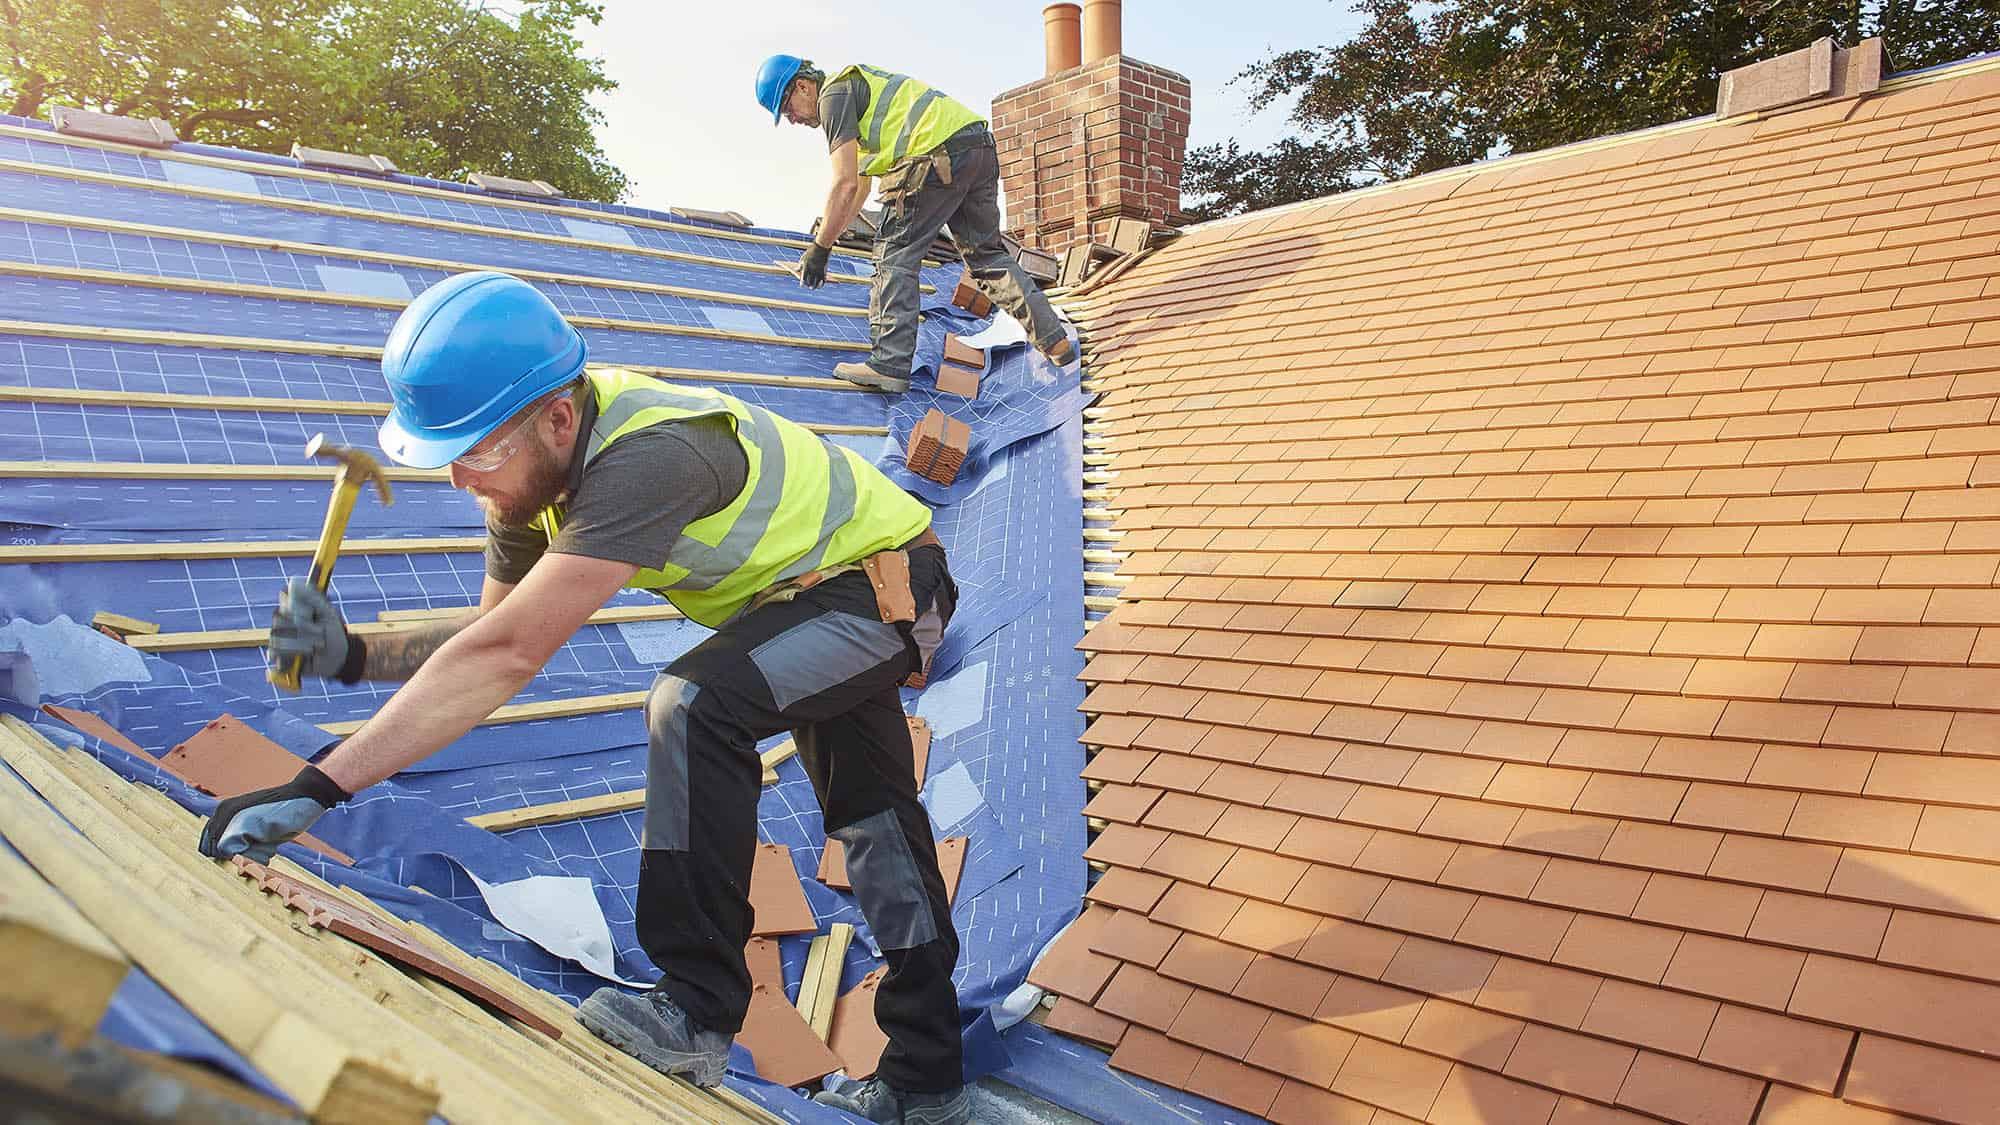 Builders working on a roof installation